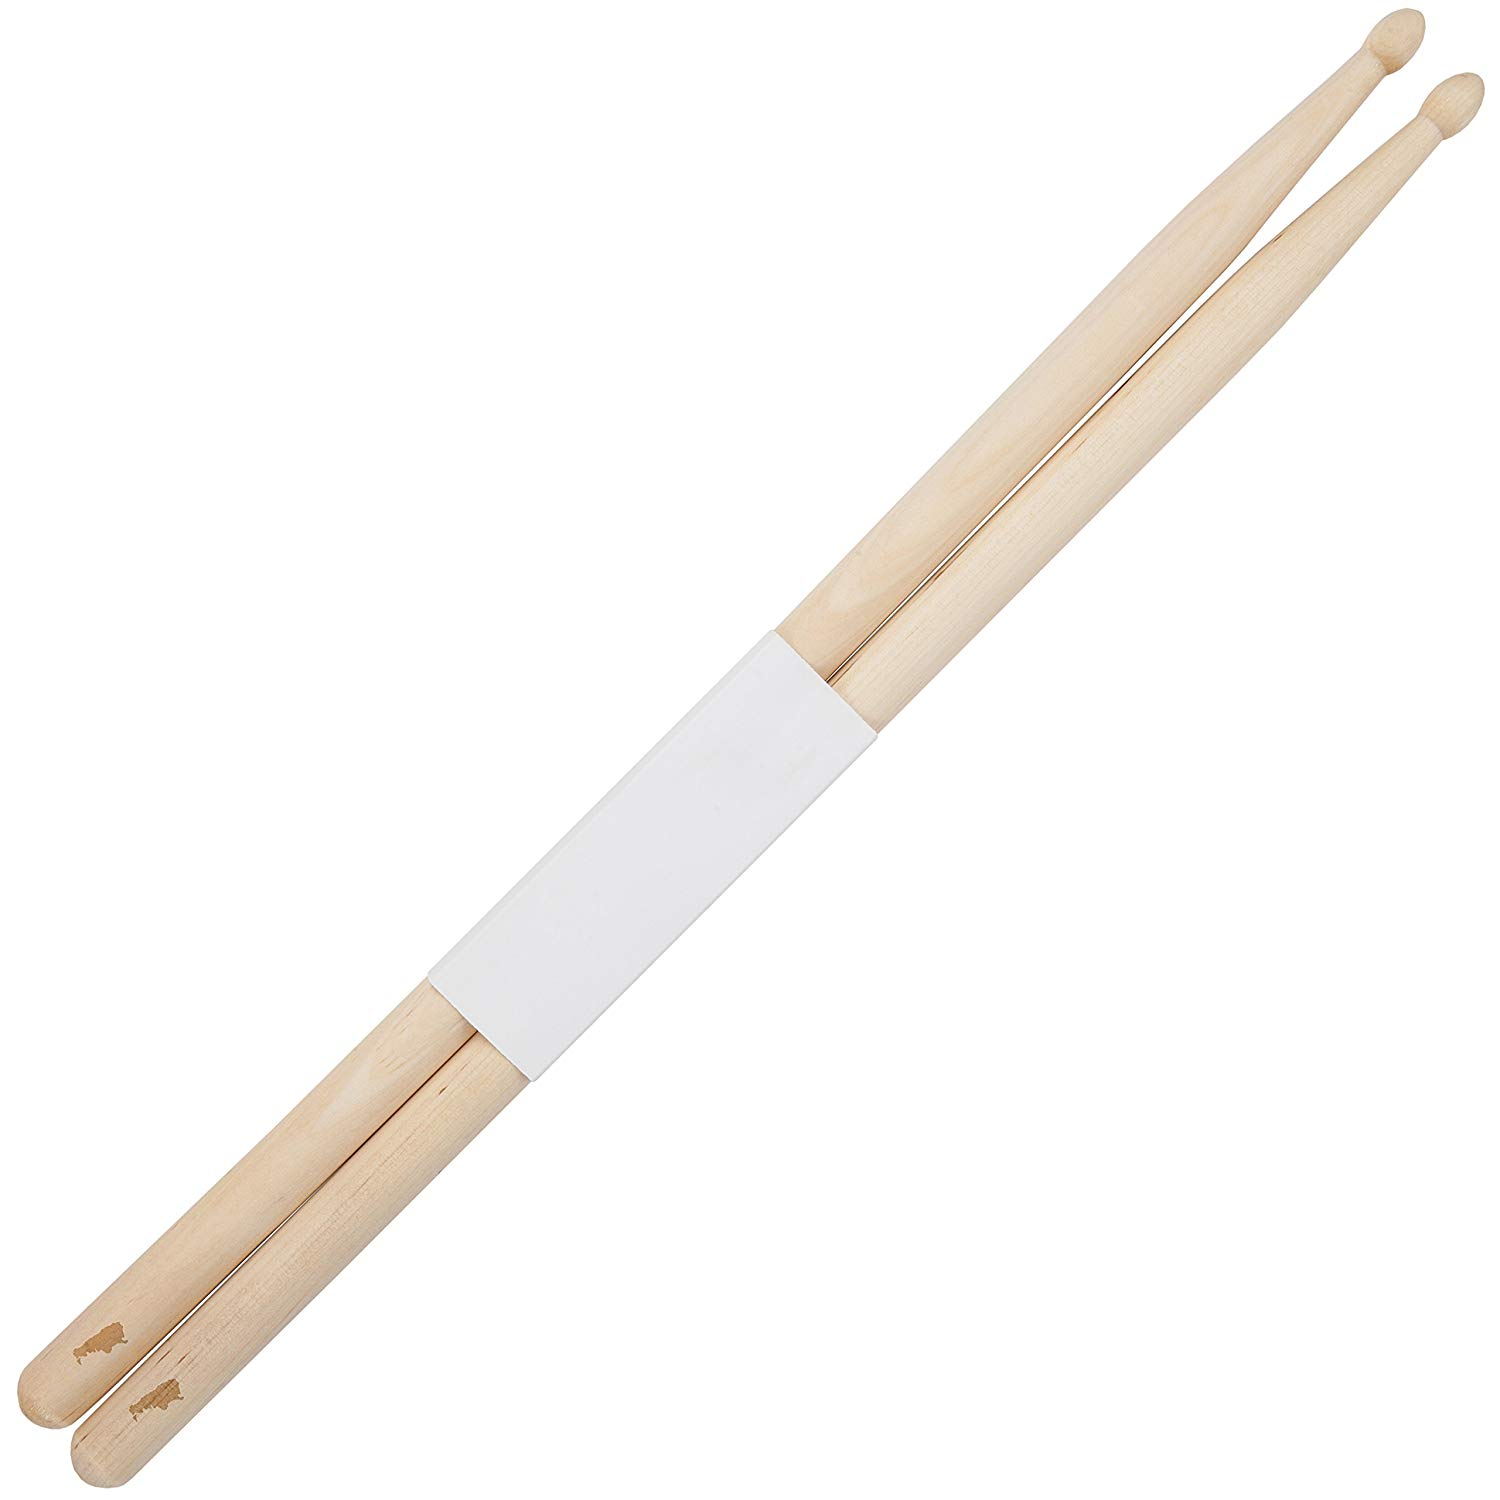 Argentina 5B Maple Drumsticks With Laser Engraved Design - Durable Drumstick Set With Wooden Tip - Wood Drumsticks Gift